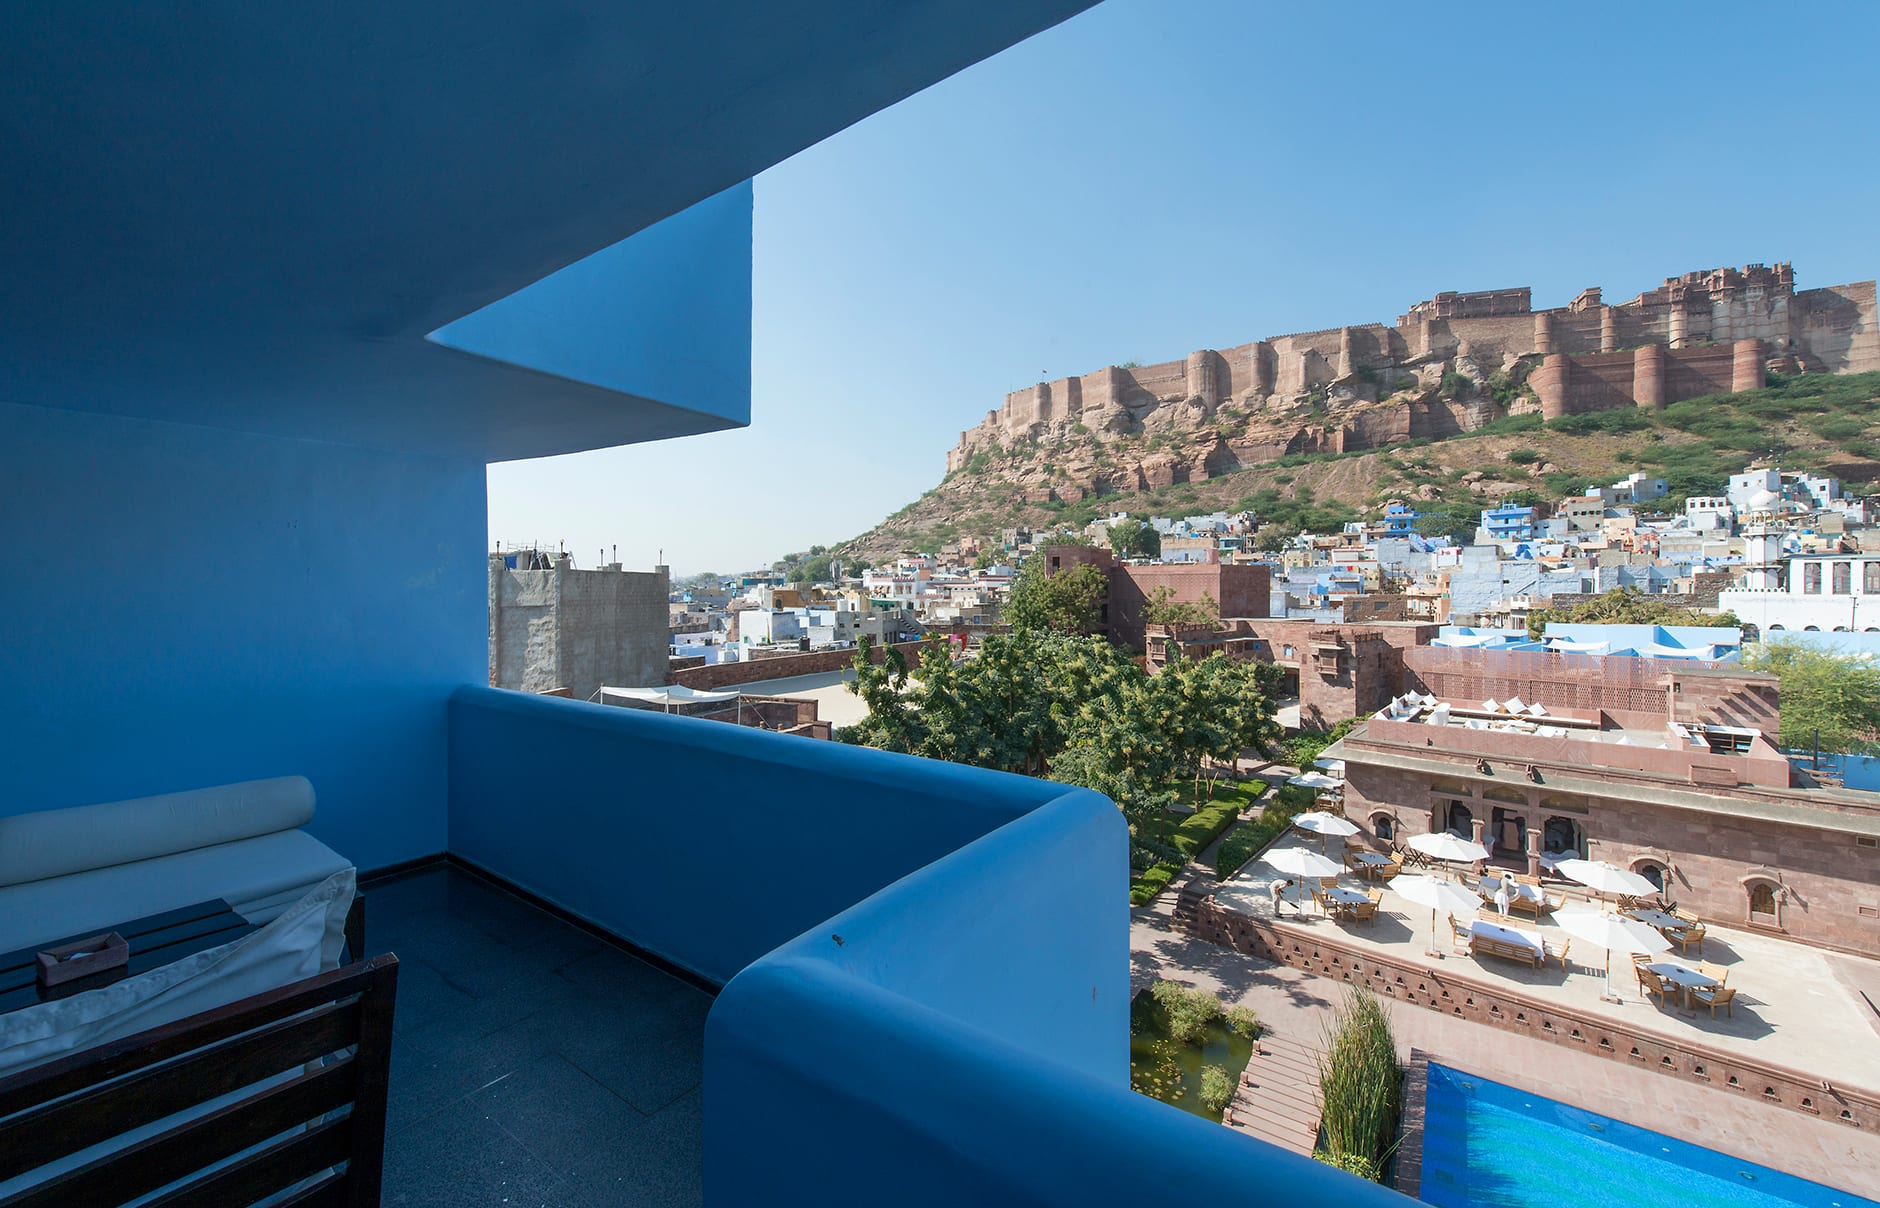 Duplex Suite. Raas Jodhpur, India. Luxury Hotel Review by TravelPlusStyle. Photo © Rass